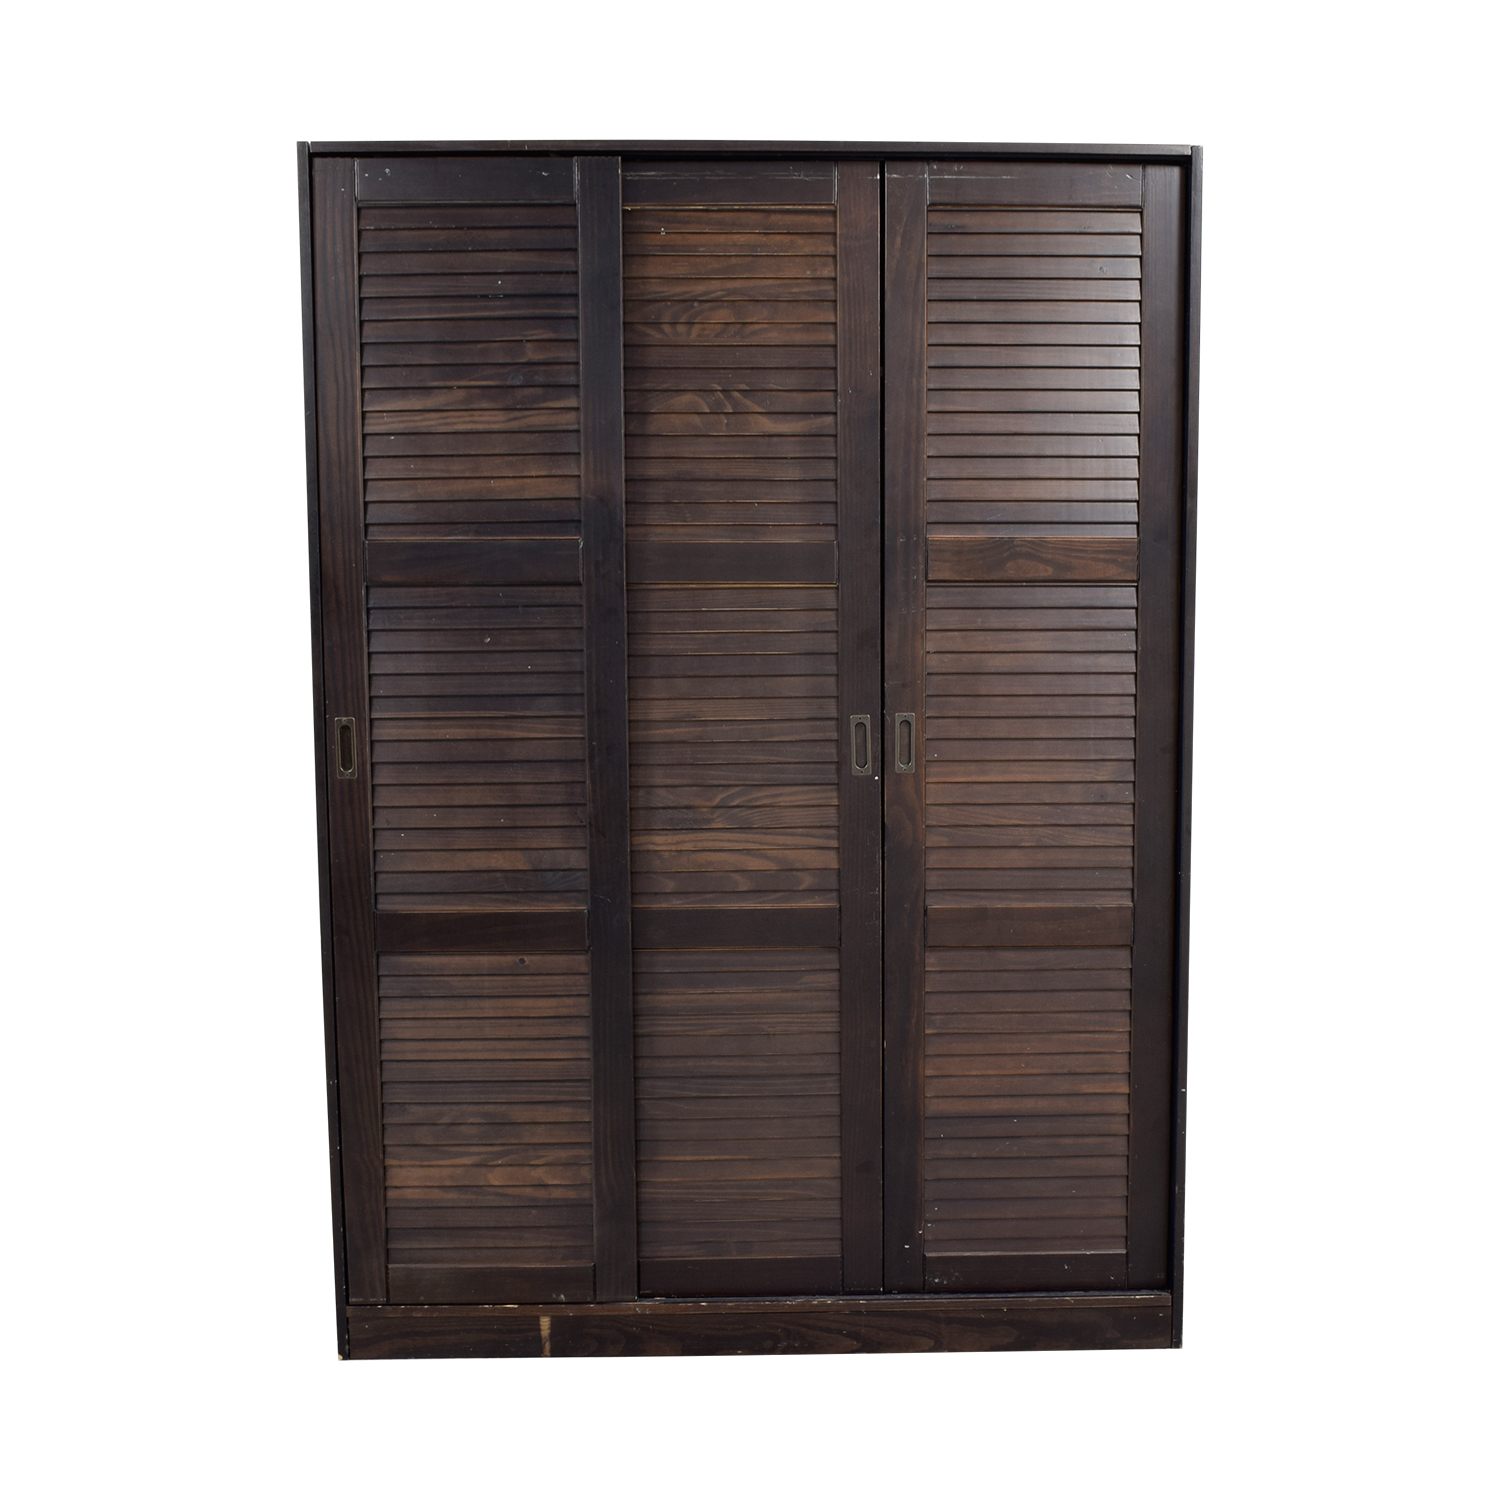 Brown Wardrobe with Hanging and Shelf Space for sale